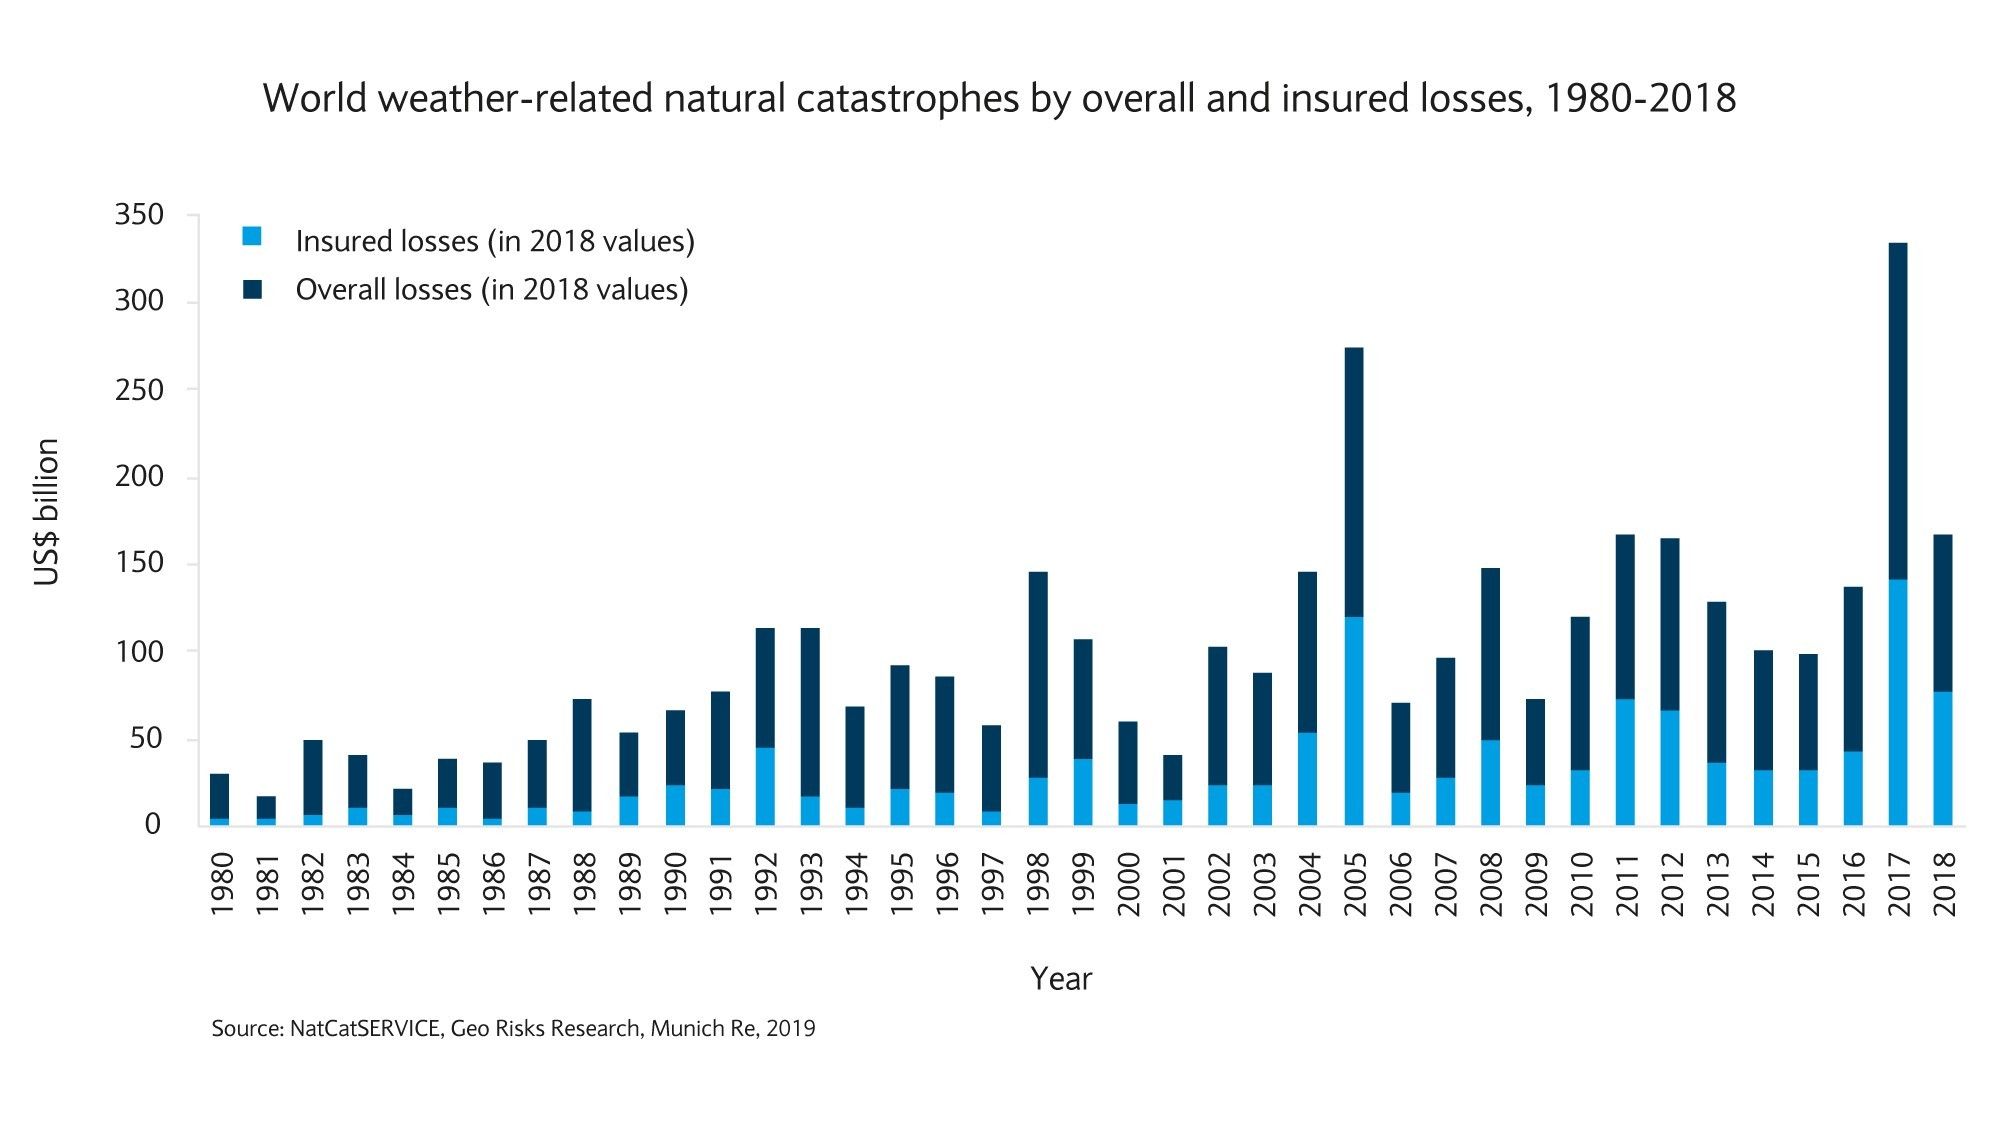 World weather-related natural catastrophes by overall and insured losses, 1980-2018